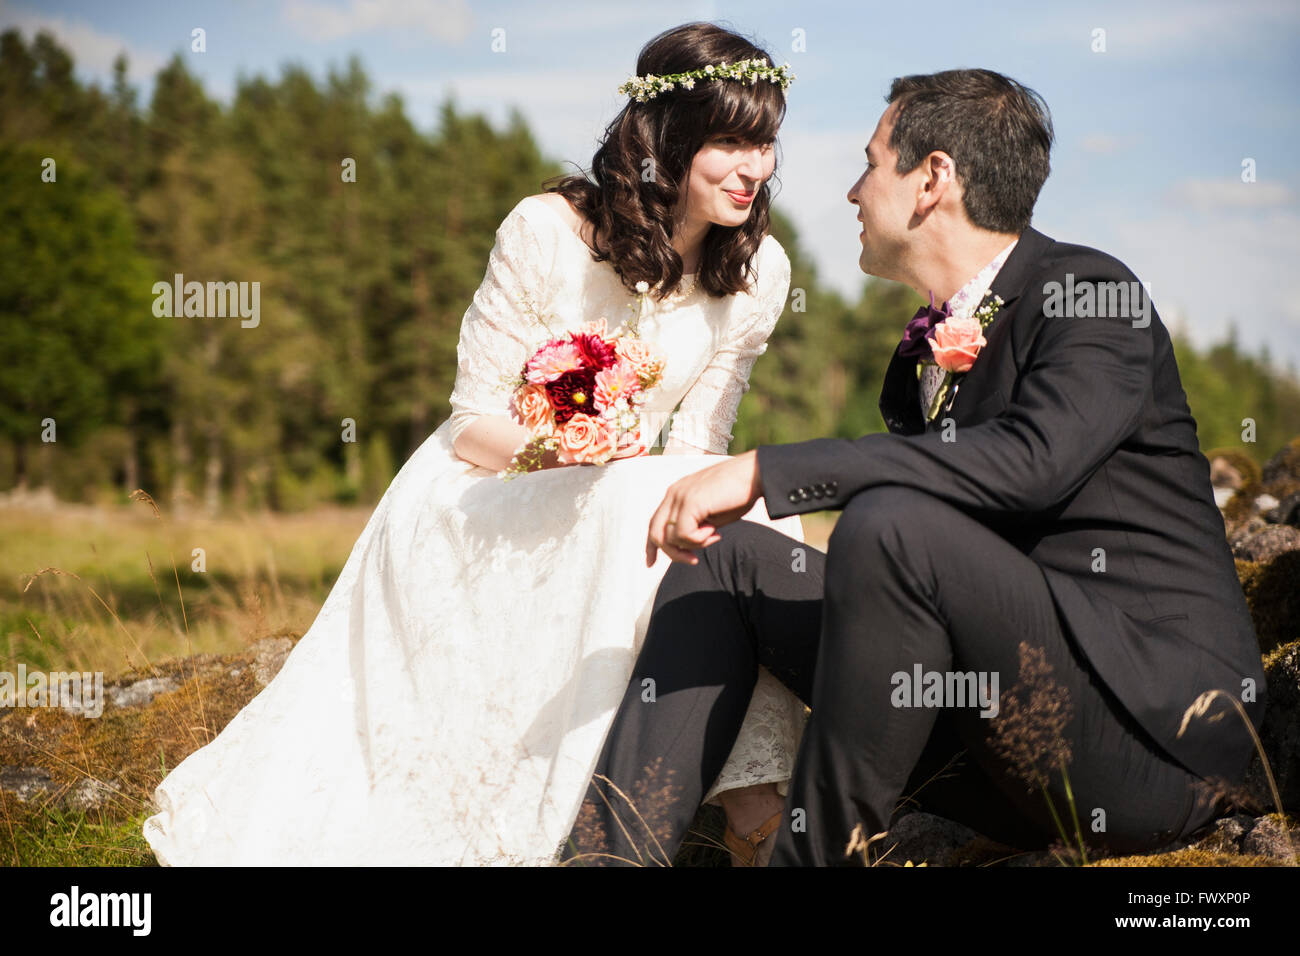 Sweden, Smaland, Vetlanda, Holsbybrunn, Newlyweds face to face in field - Stock Image